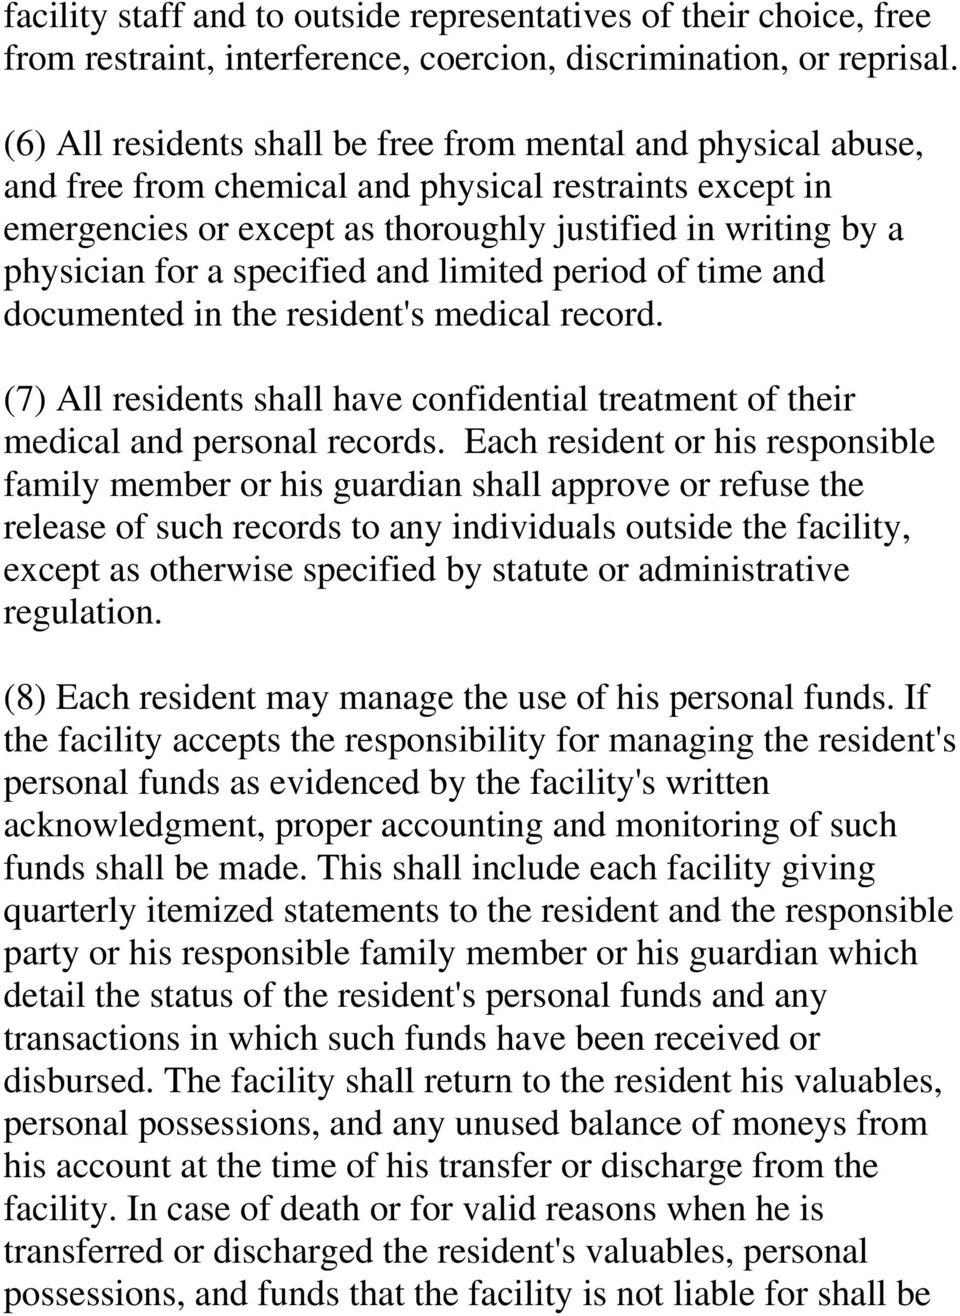 specified and limited period of time and documented in the resident's medical record. (7) All residents shall have confidential treatment of their medical and personal records.